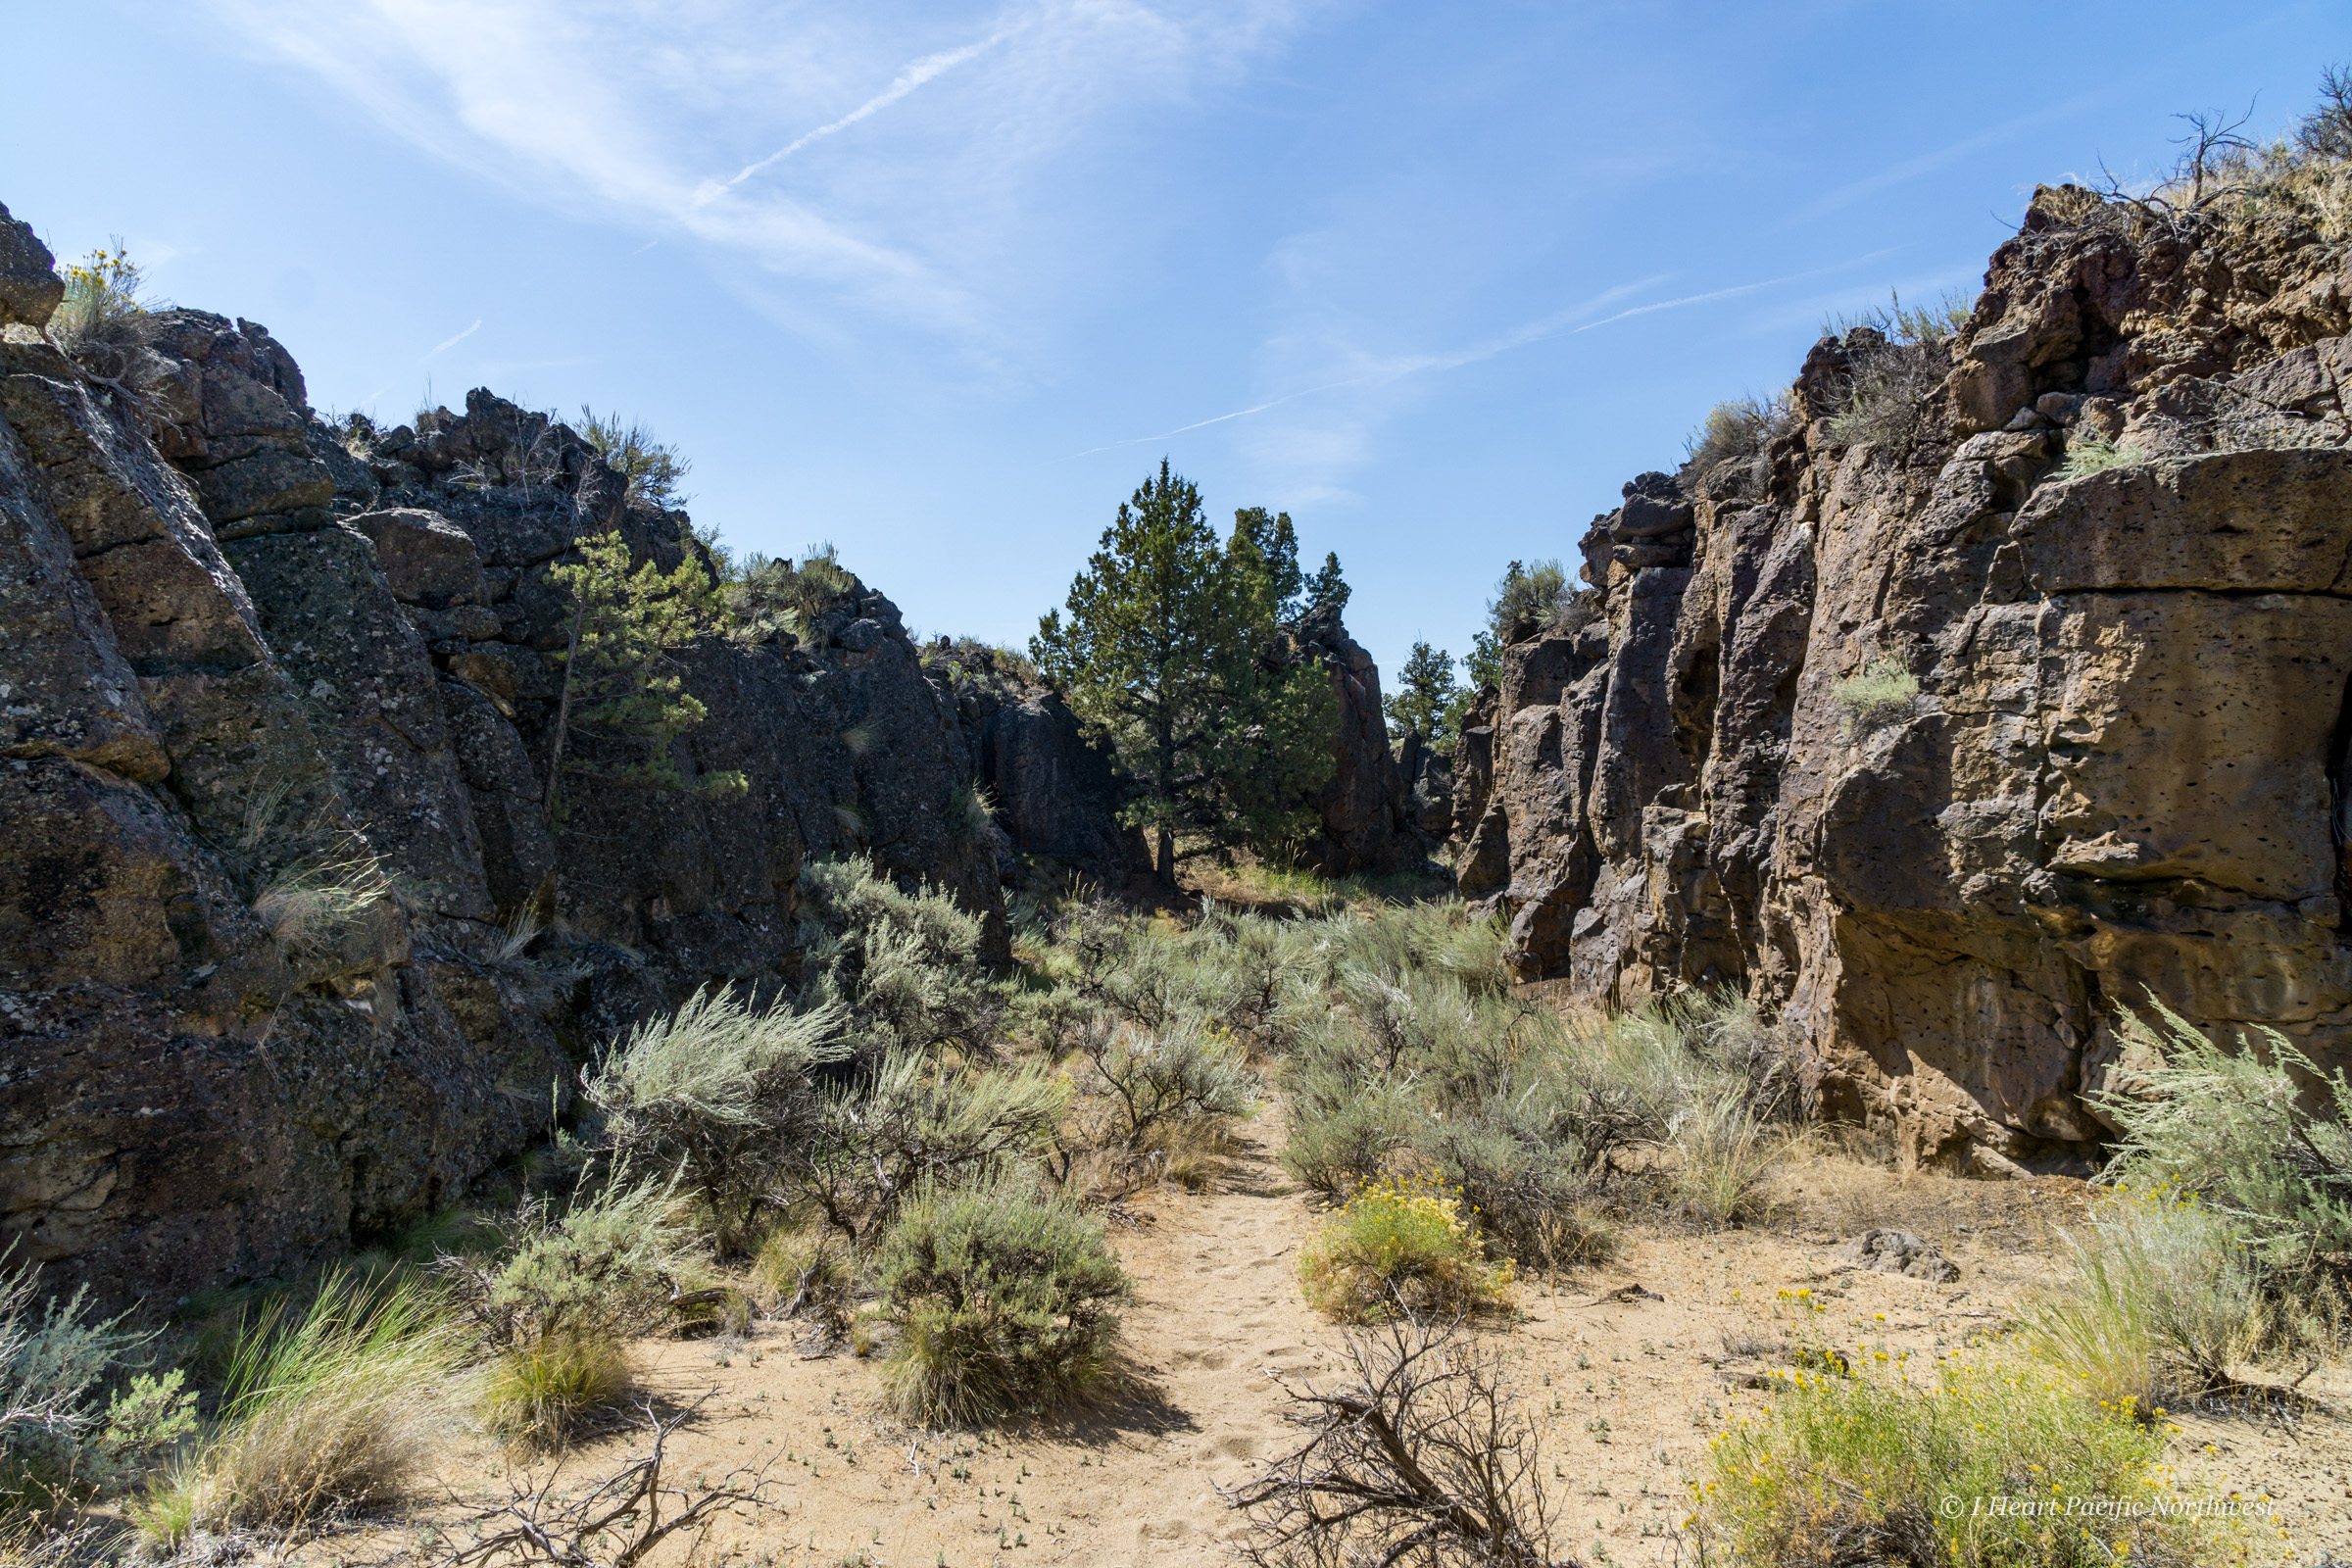 Oregon Badlands Wilderness hike